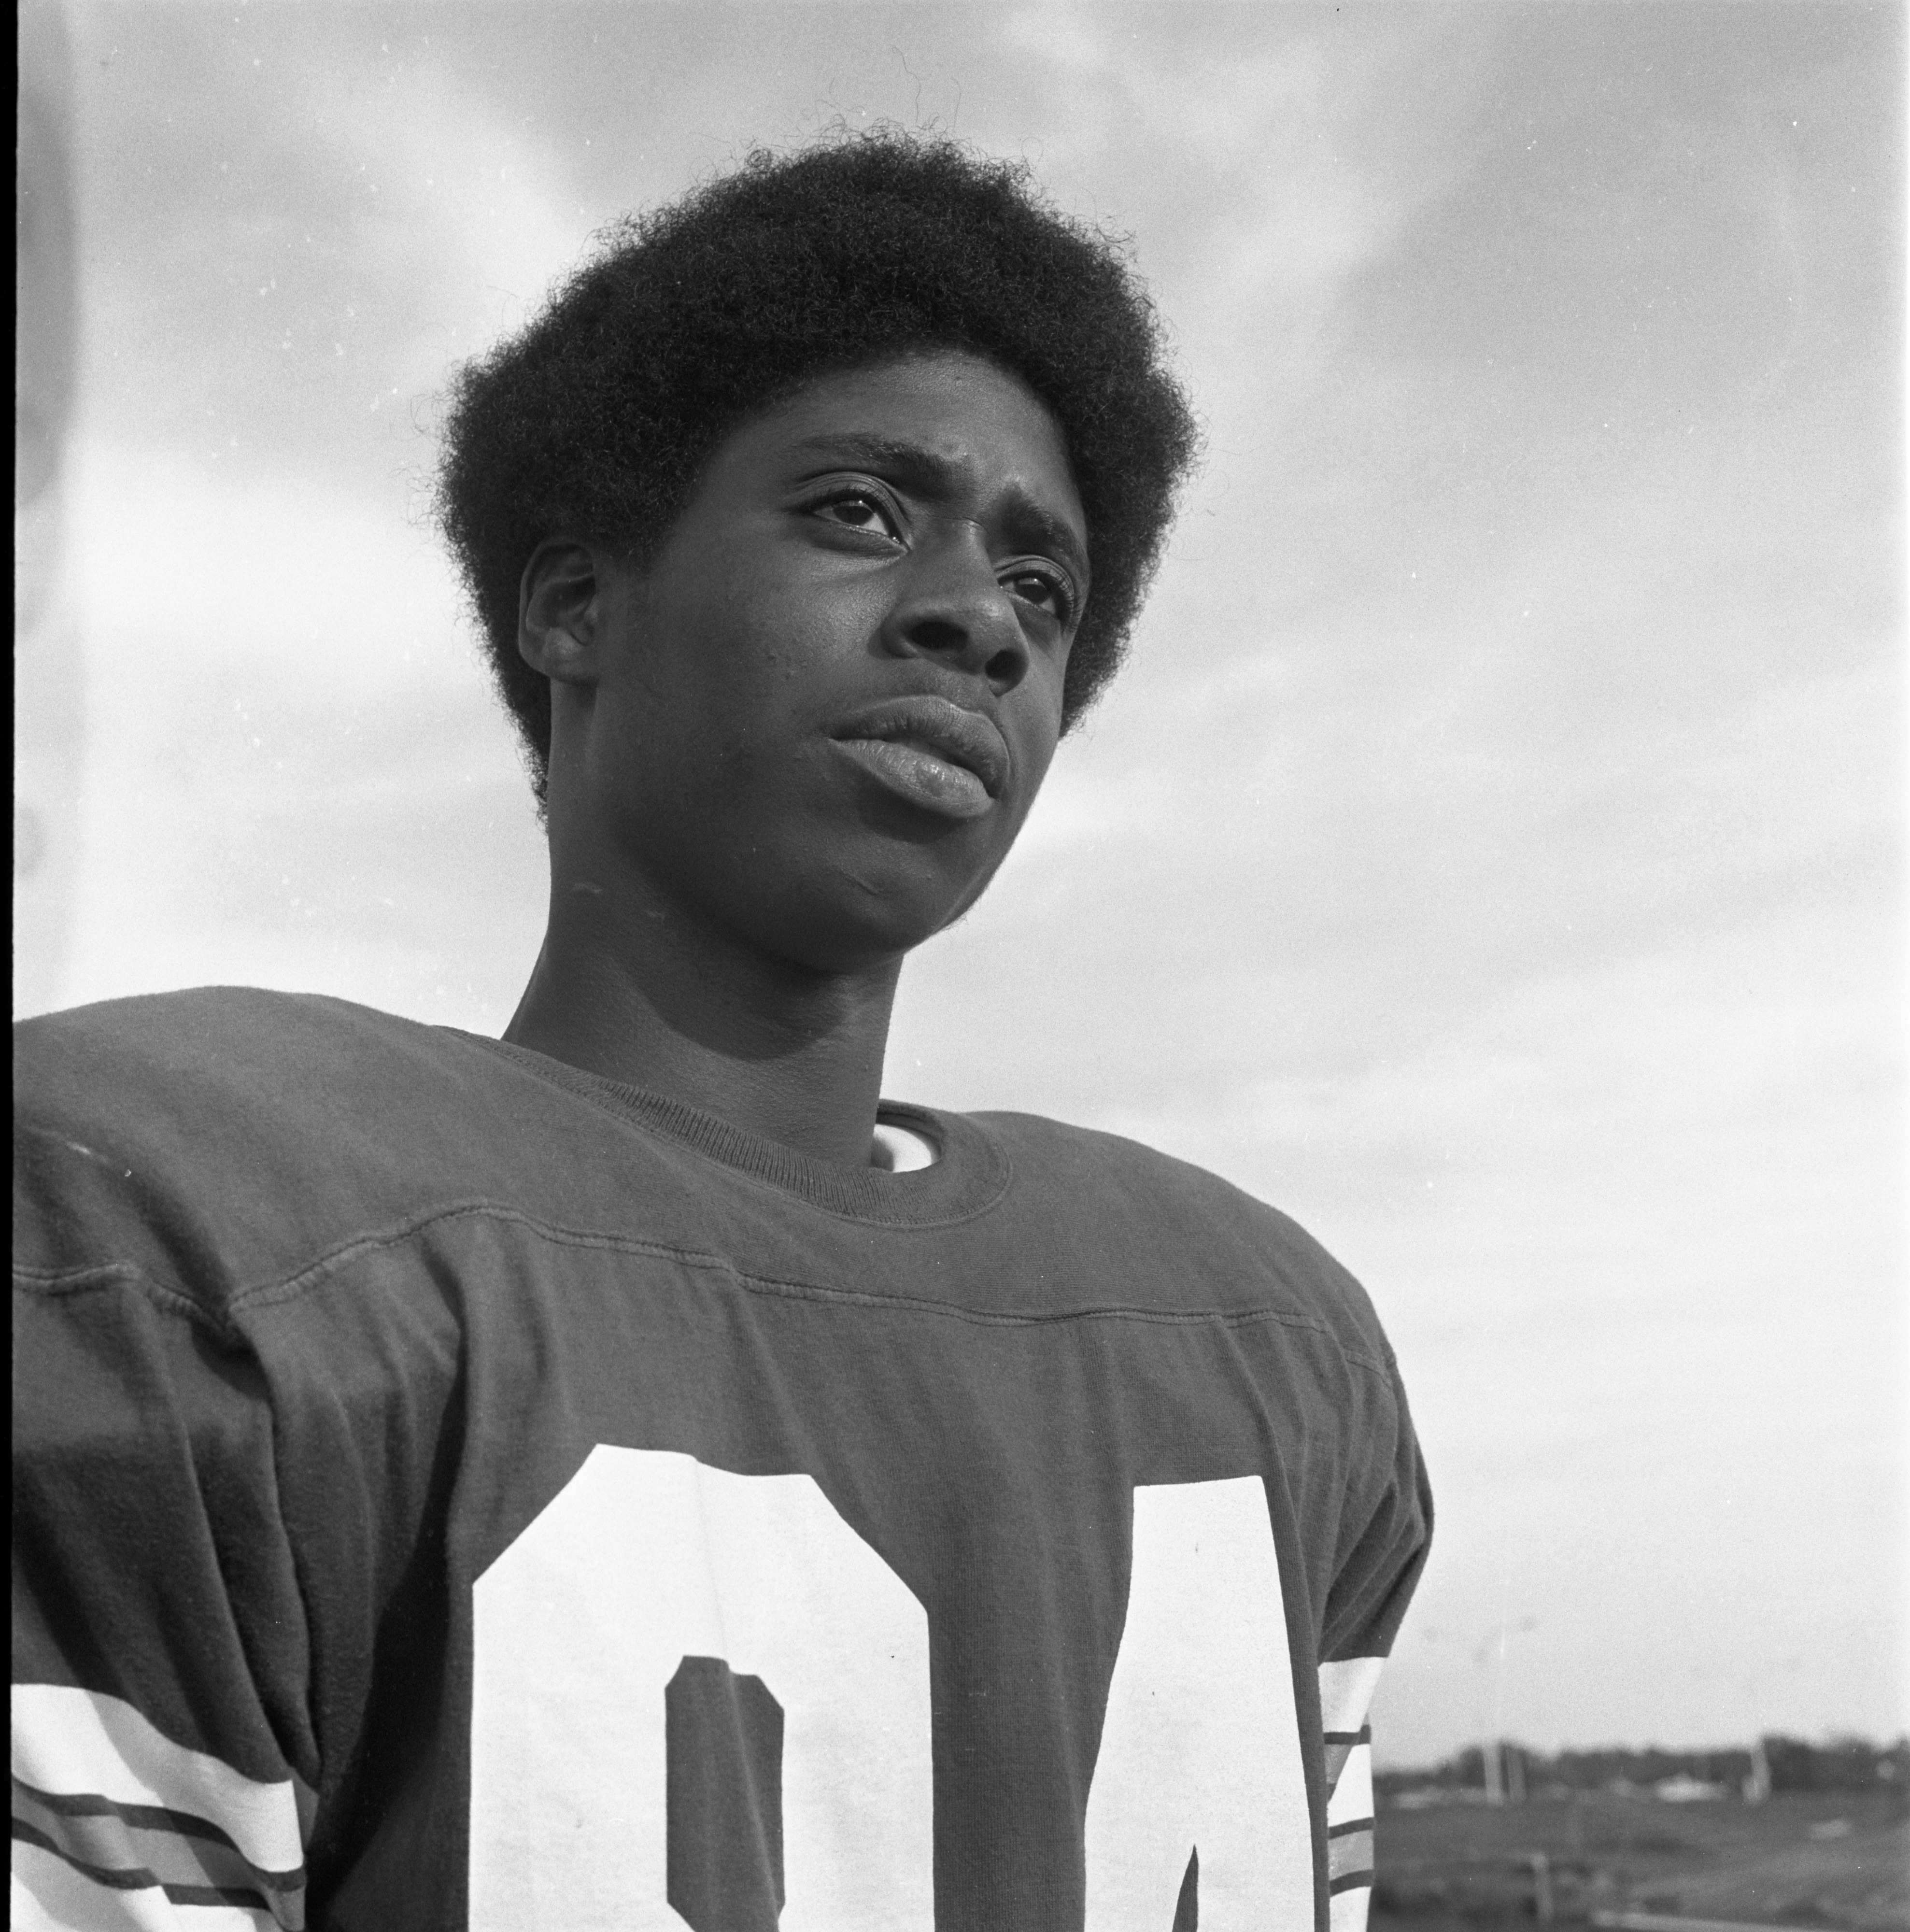 Jerry Collins - Wide Receiver, Huron High School Football Team, October 1970 image